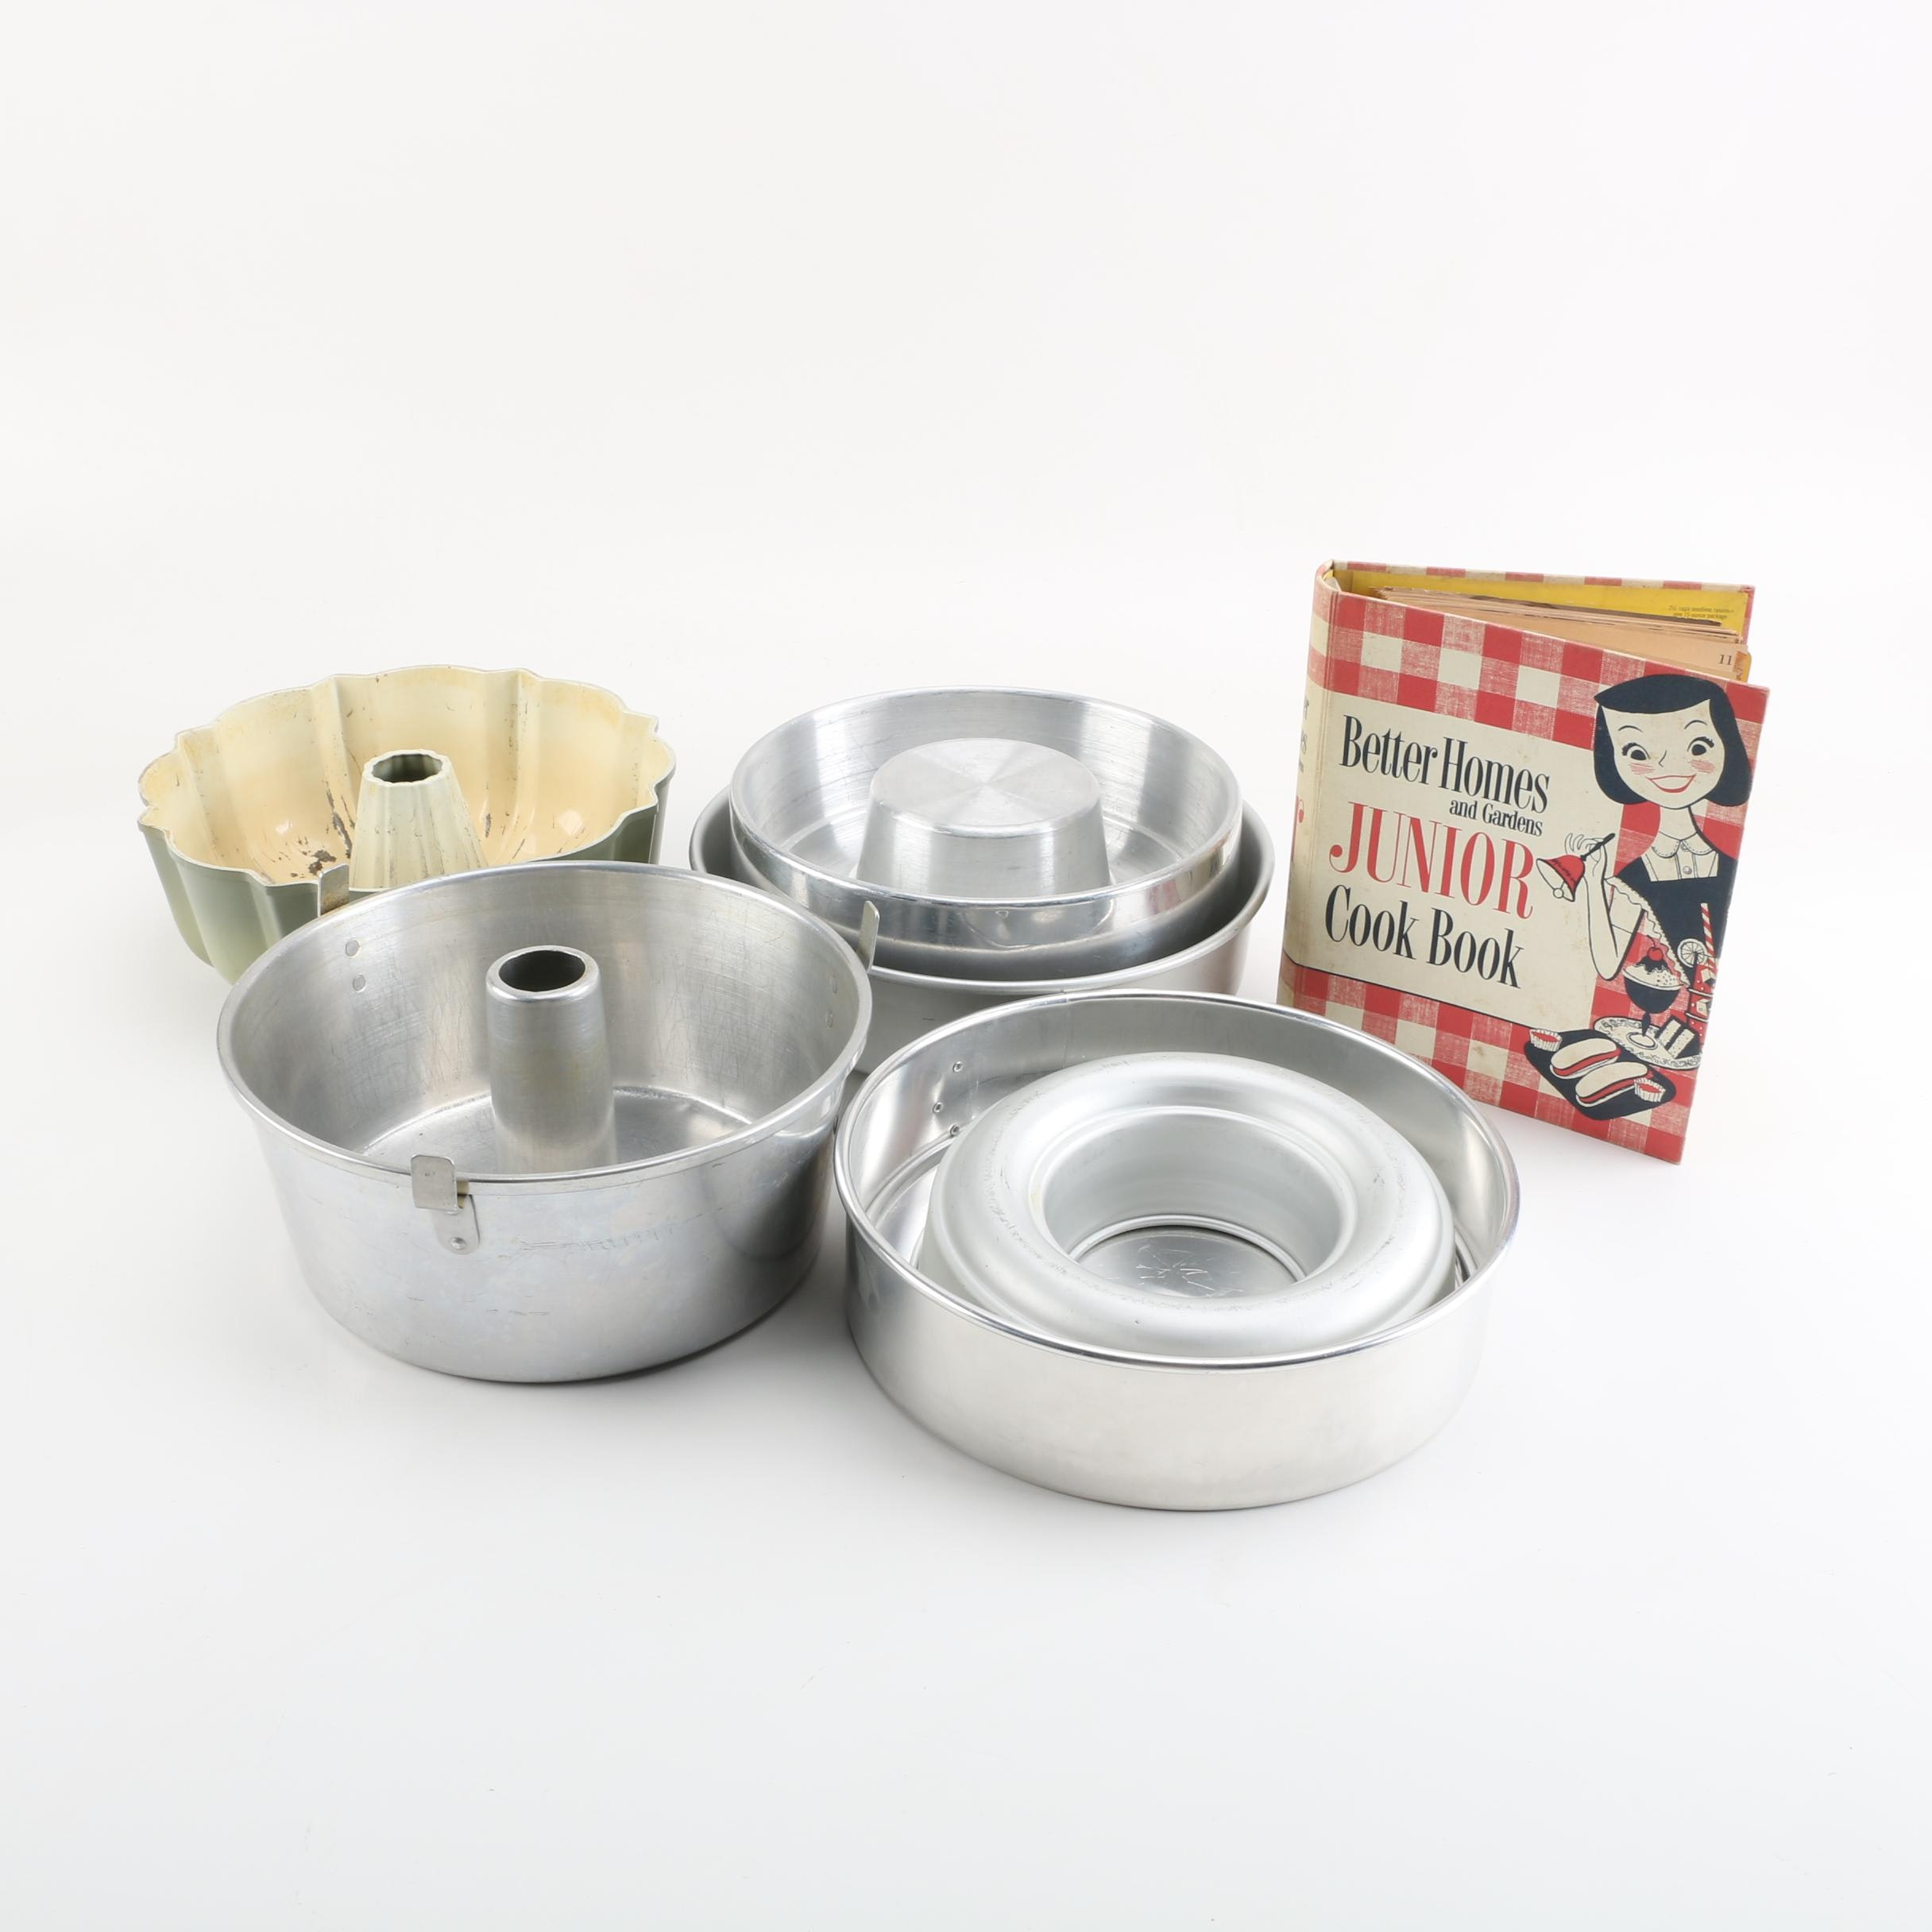 """Baking Molds Including """"Nordic Ware"""" And Better Homes and Garden Junior Cookbook"""